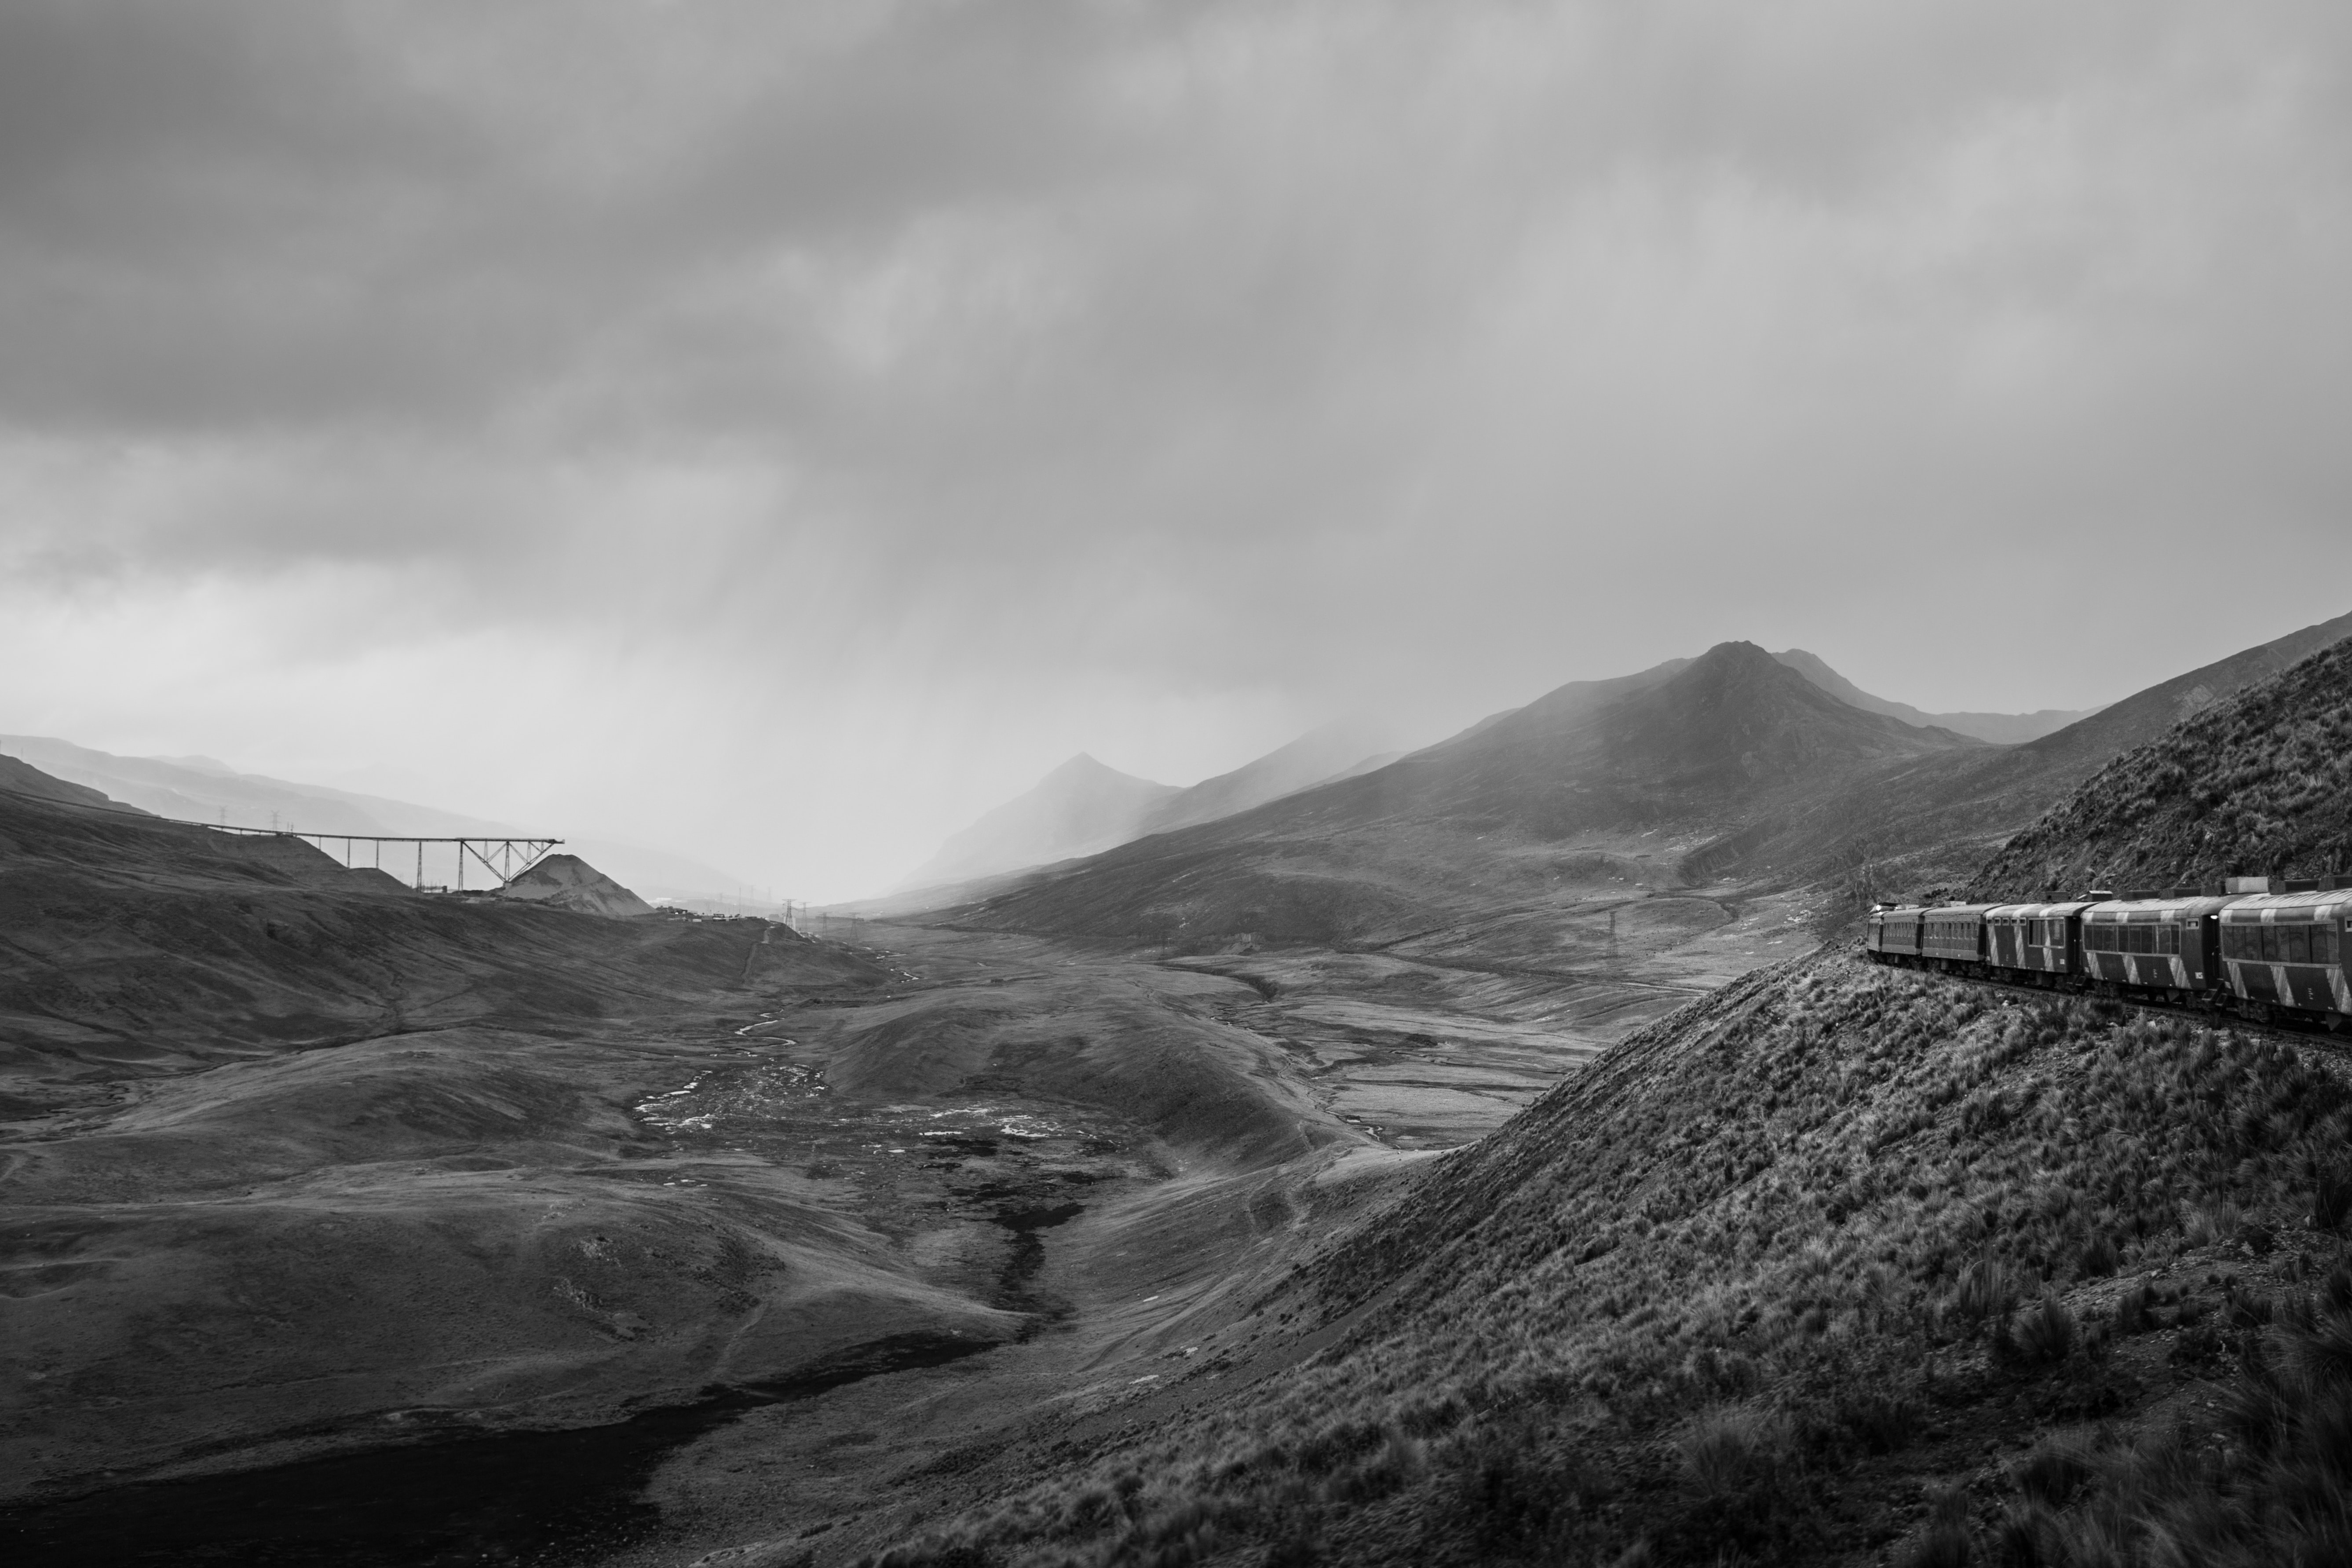 Black and white panoramic shot of train travelling through mountains and rocks with cloudy sky